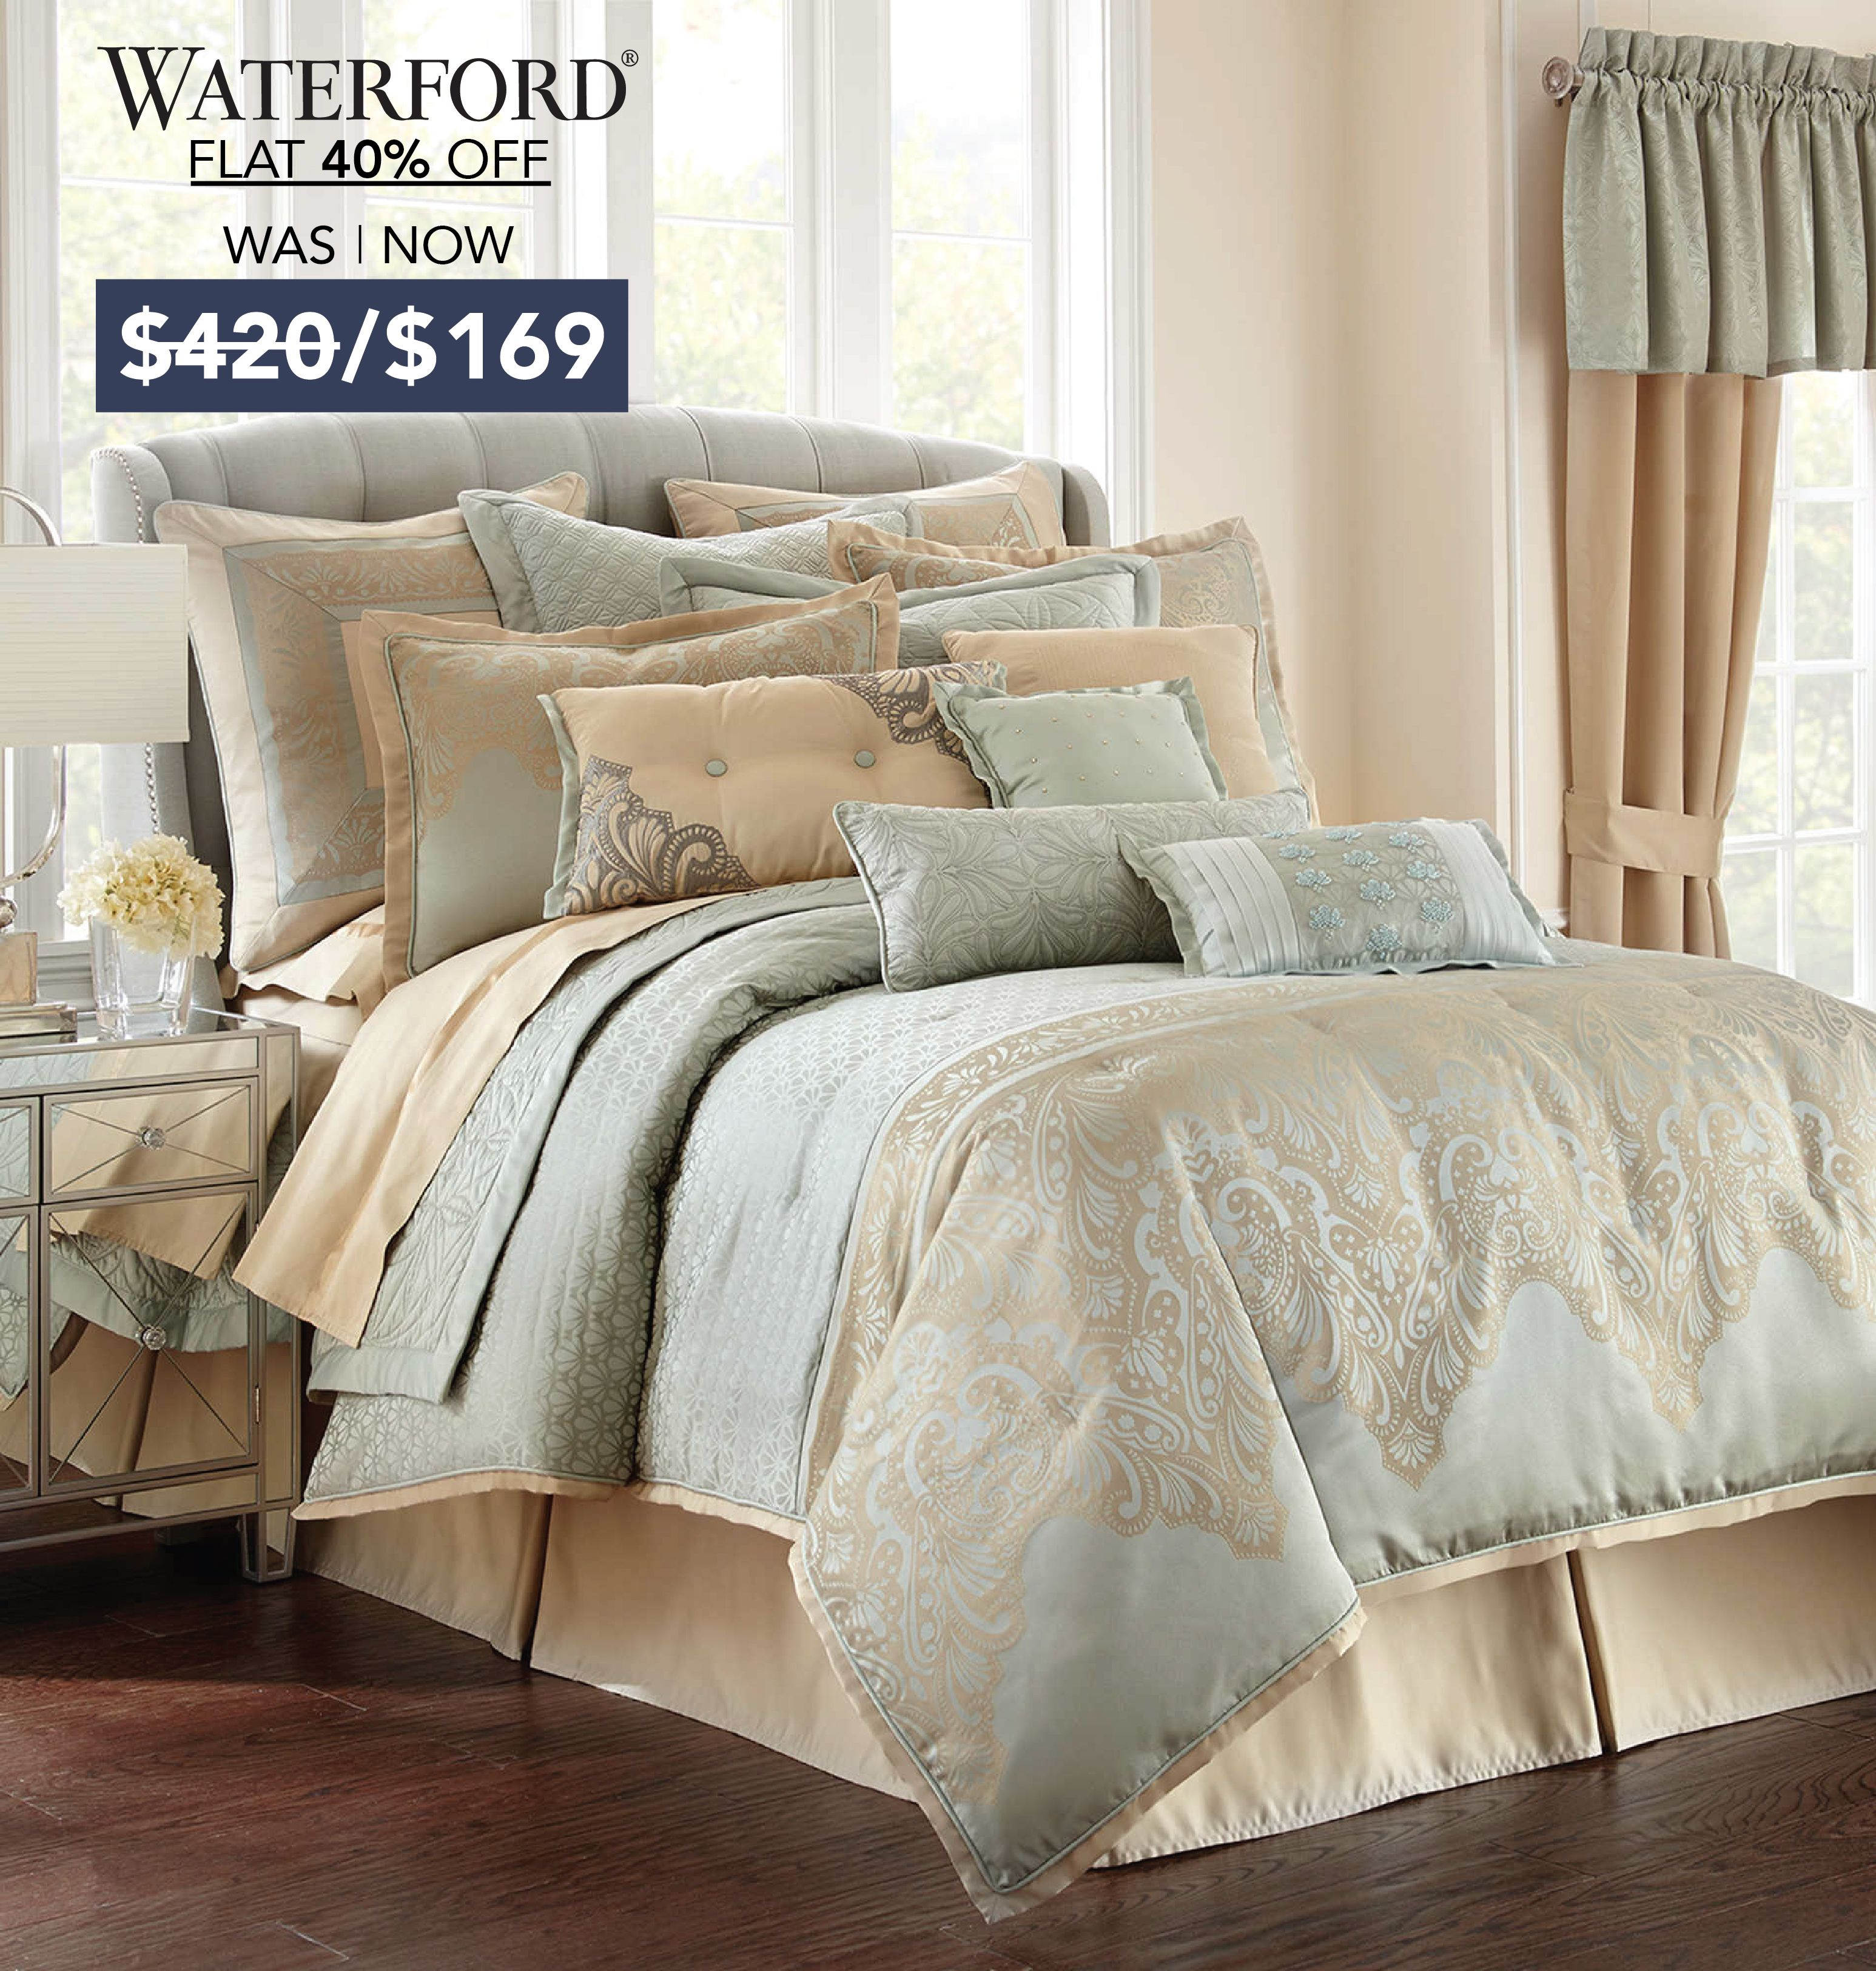 Best Waterford Luxury Bedding With Price Discount With Images 400 x 300